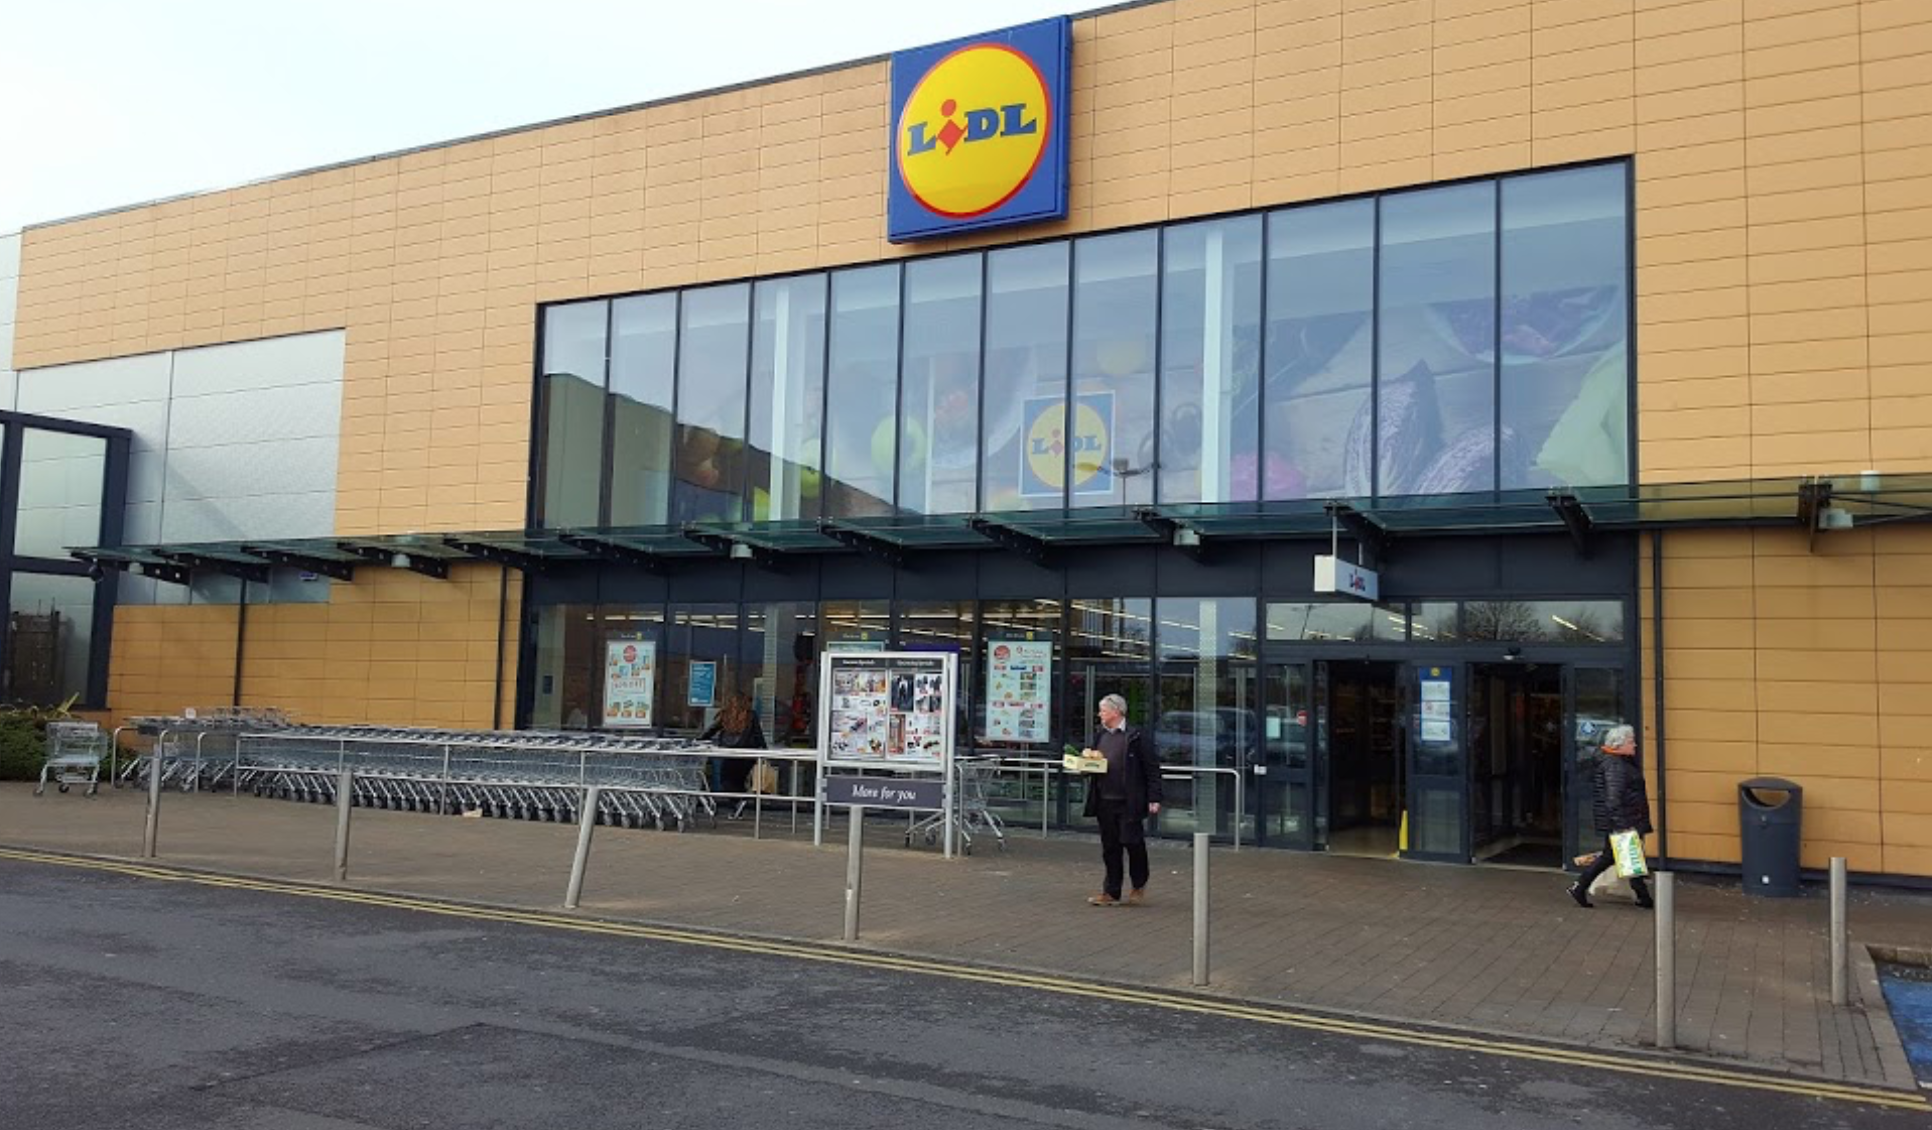 M&E Contract Awarded for Lidl Fonthill